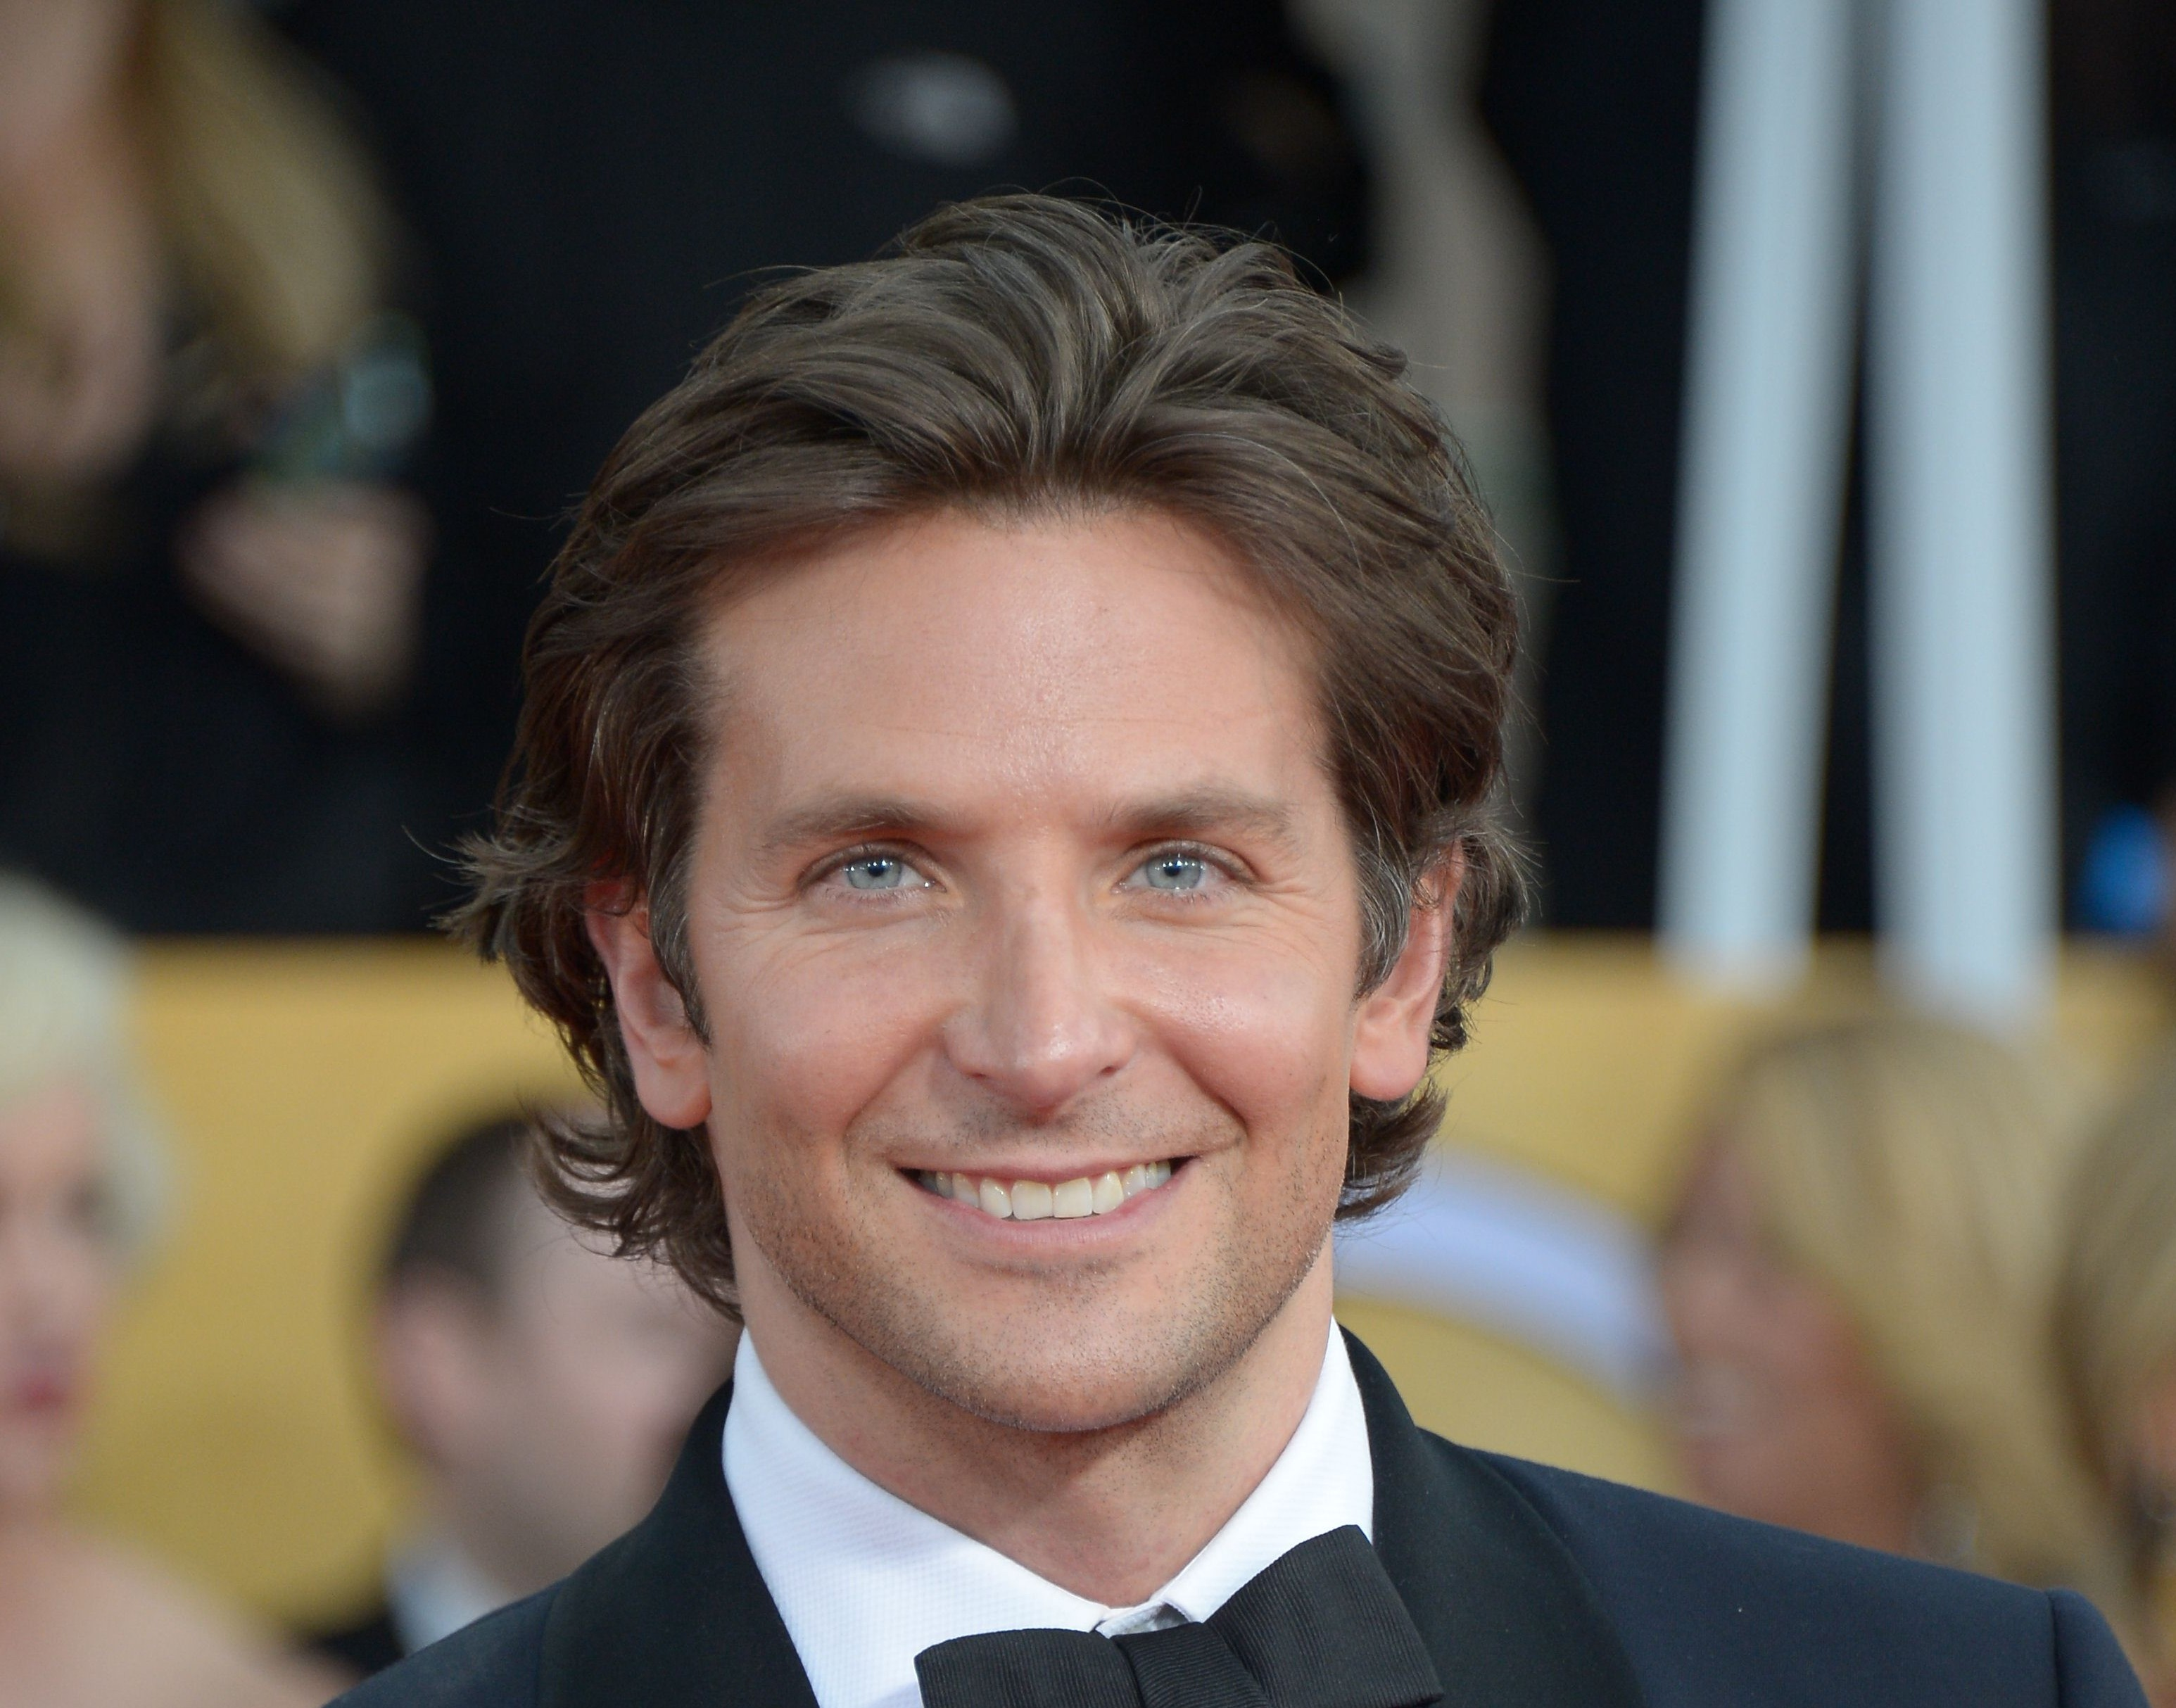 Bradley Cooper replaces Jude Law in troubled project Jane's Got A Gun